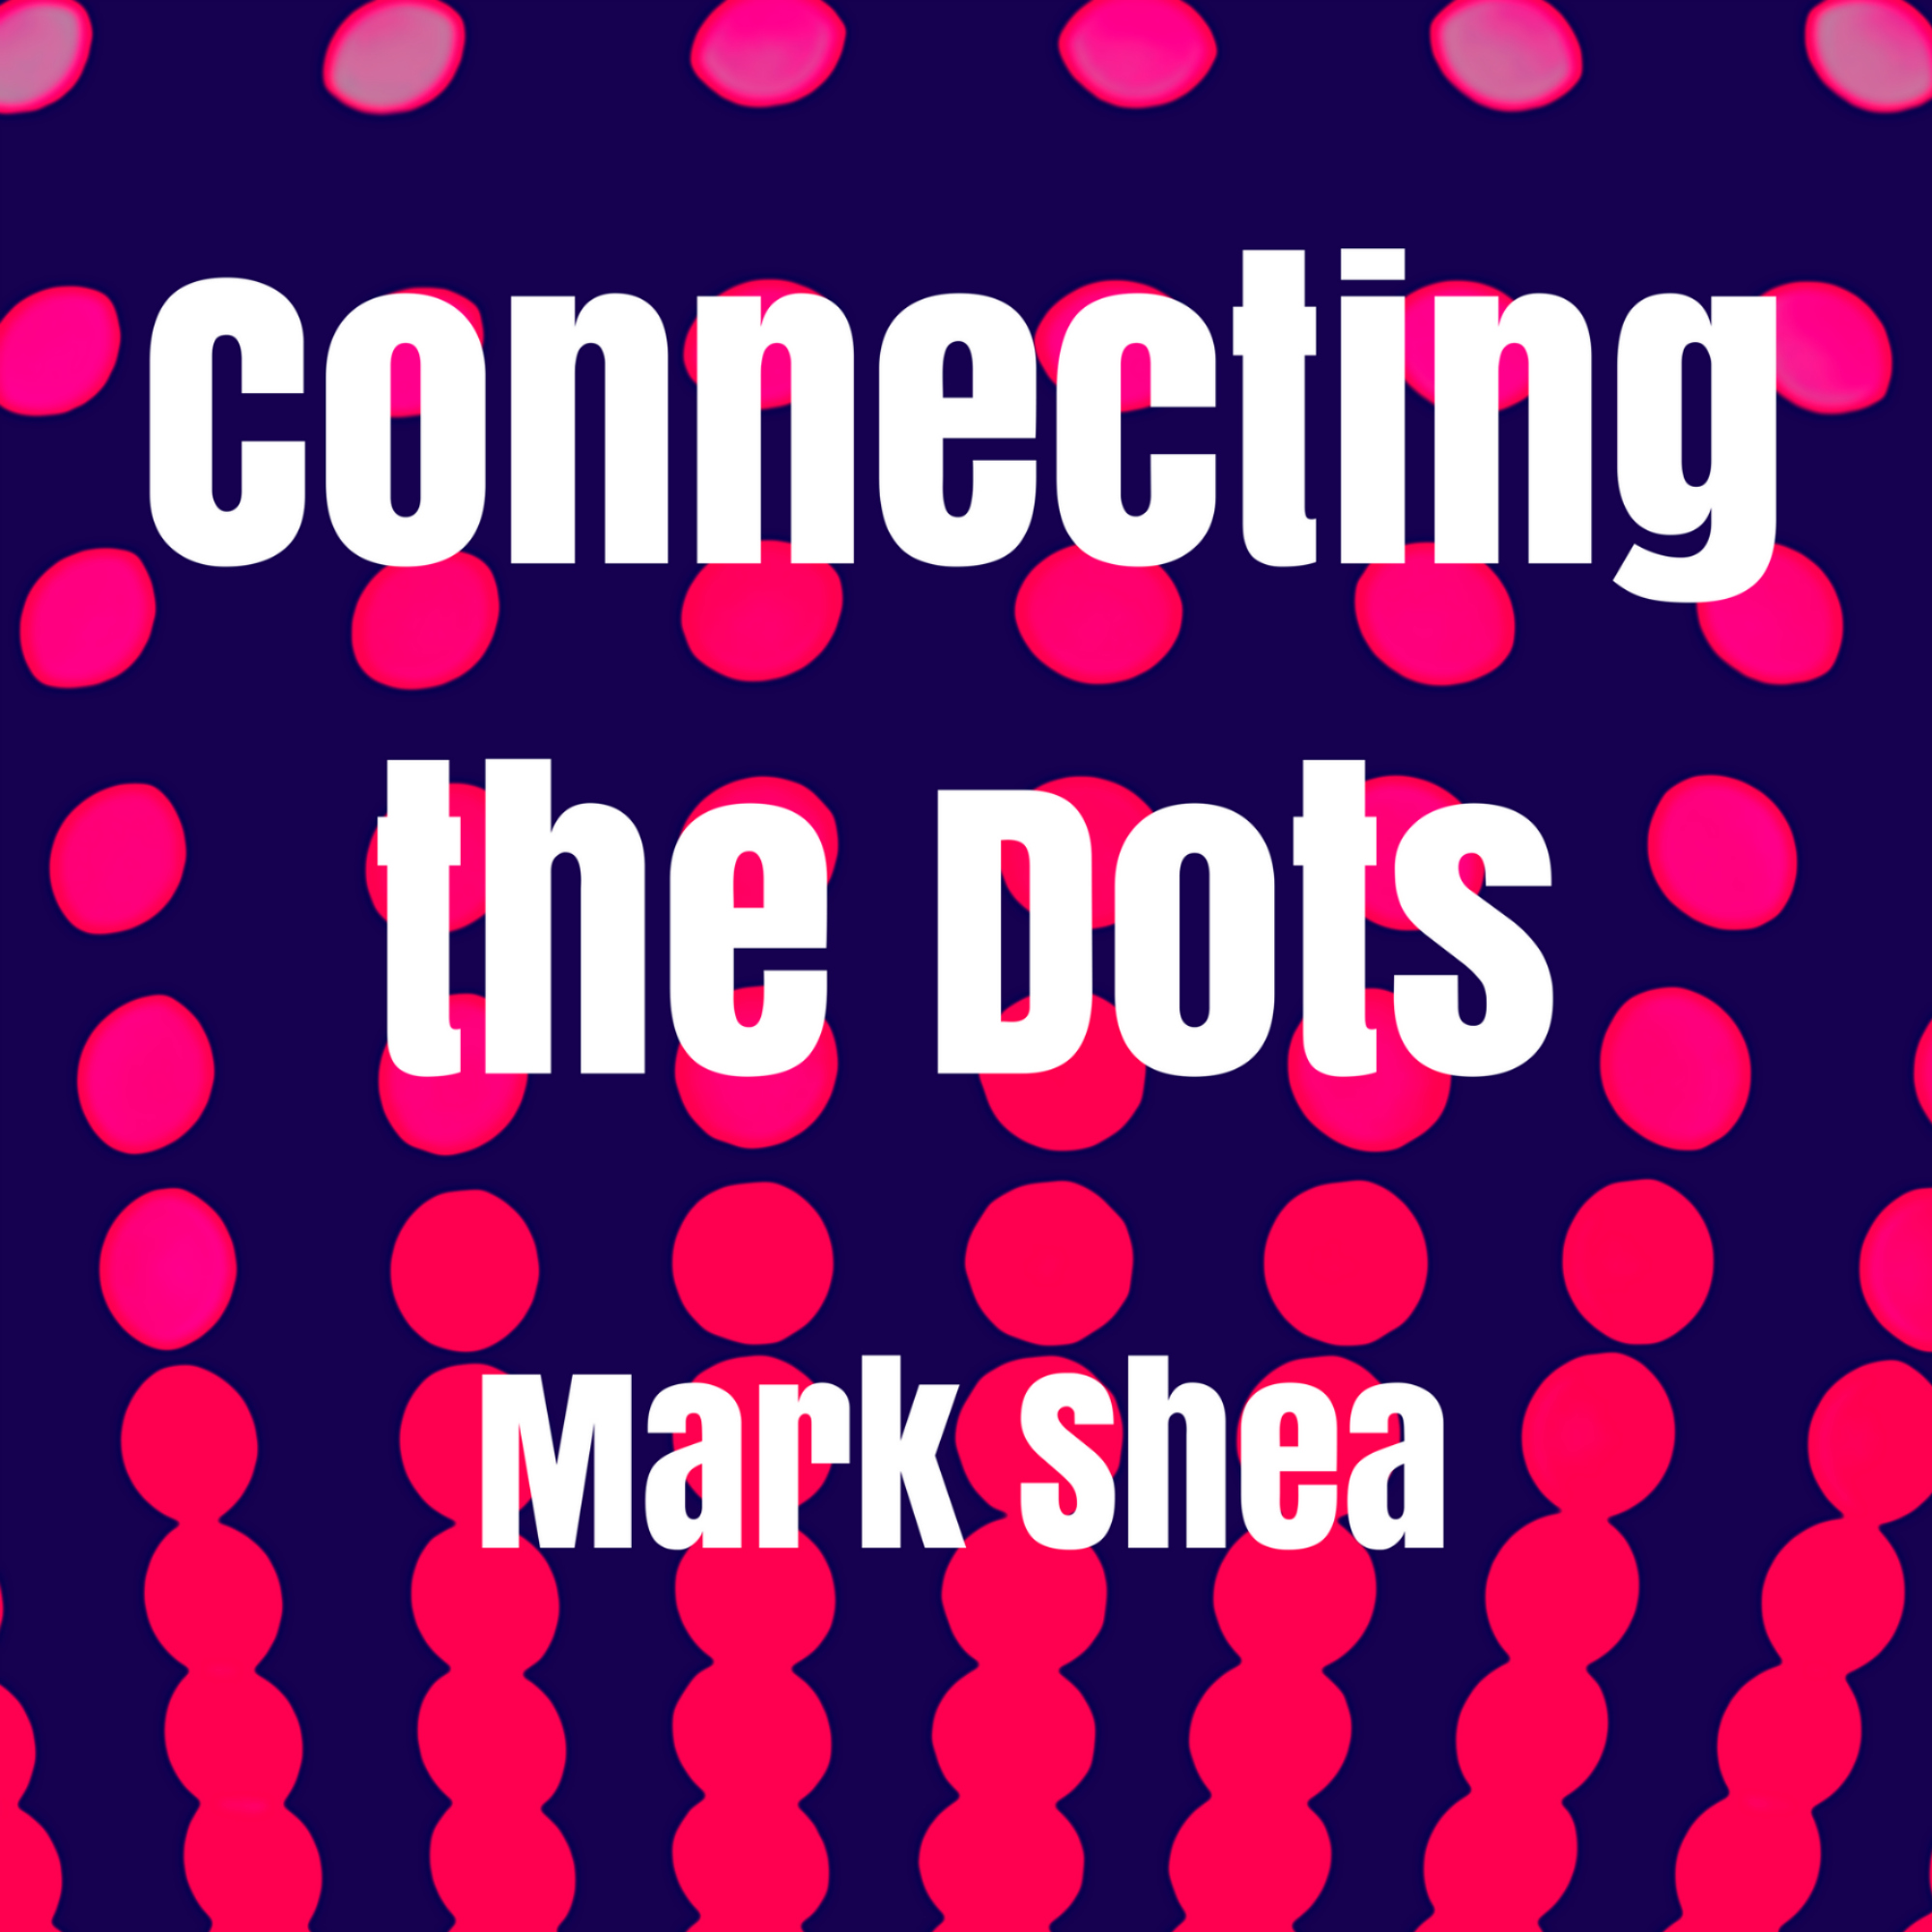 Connecting the Dots w/ Mark Shea and Tom McDonald - 8/11/18